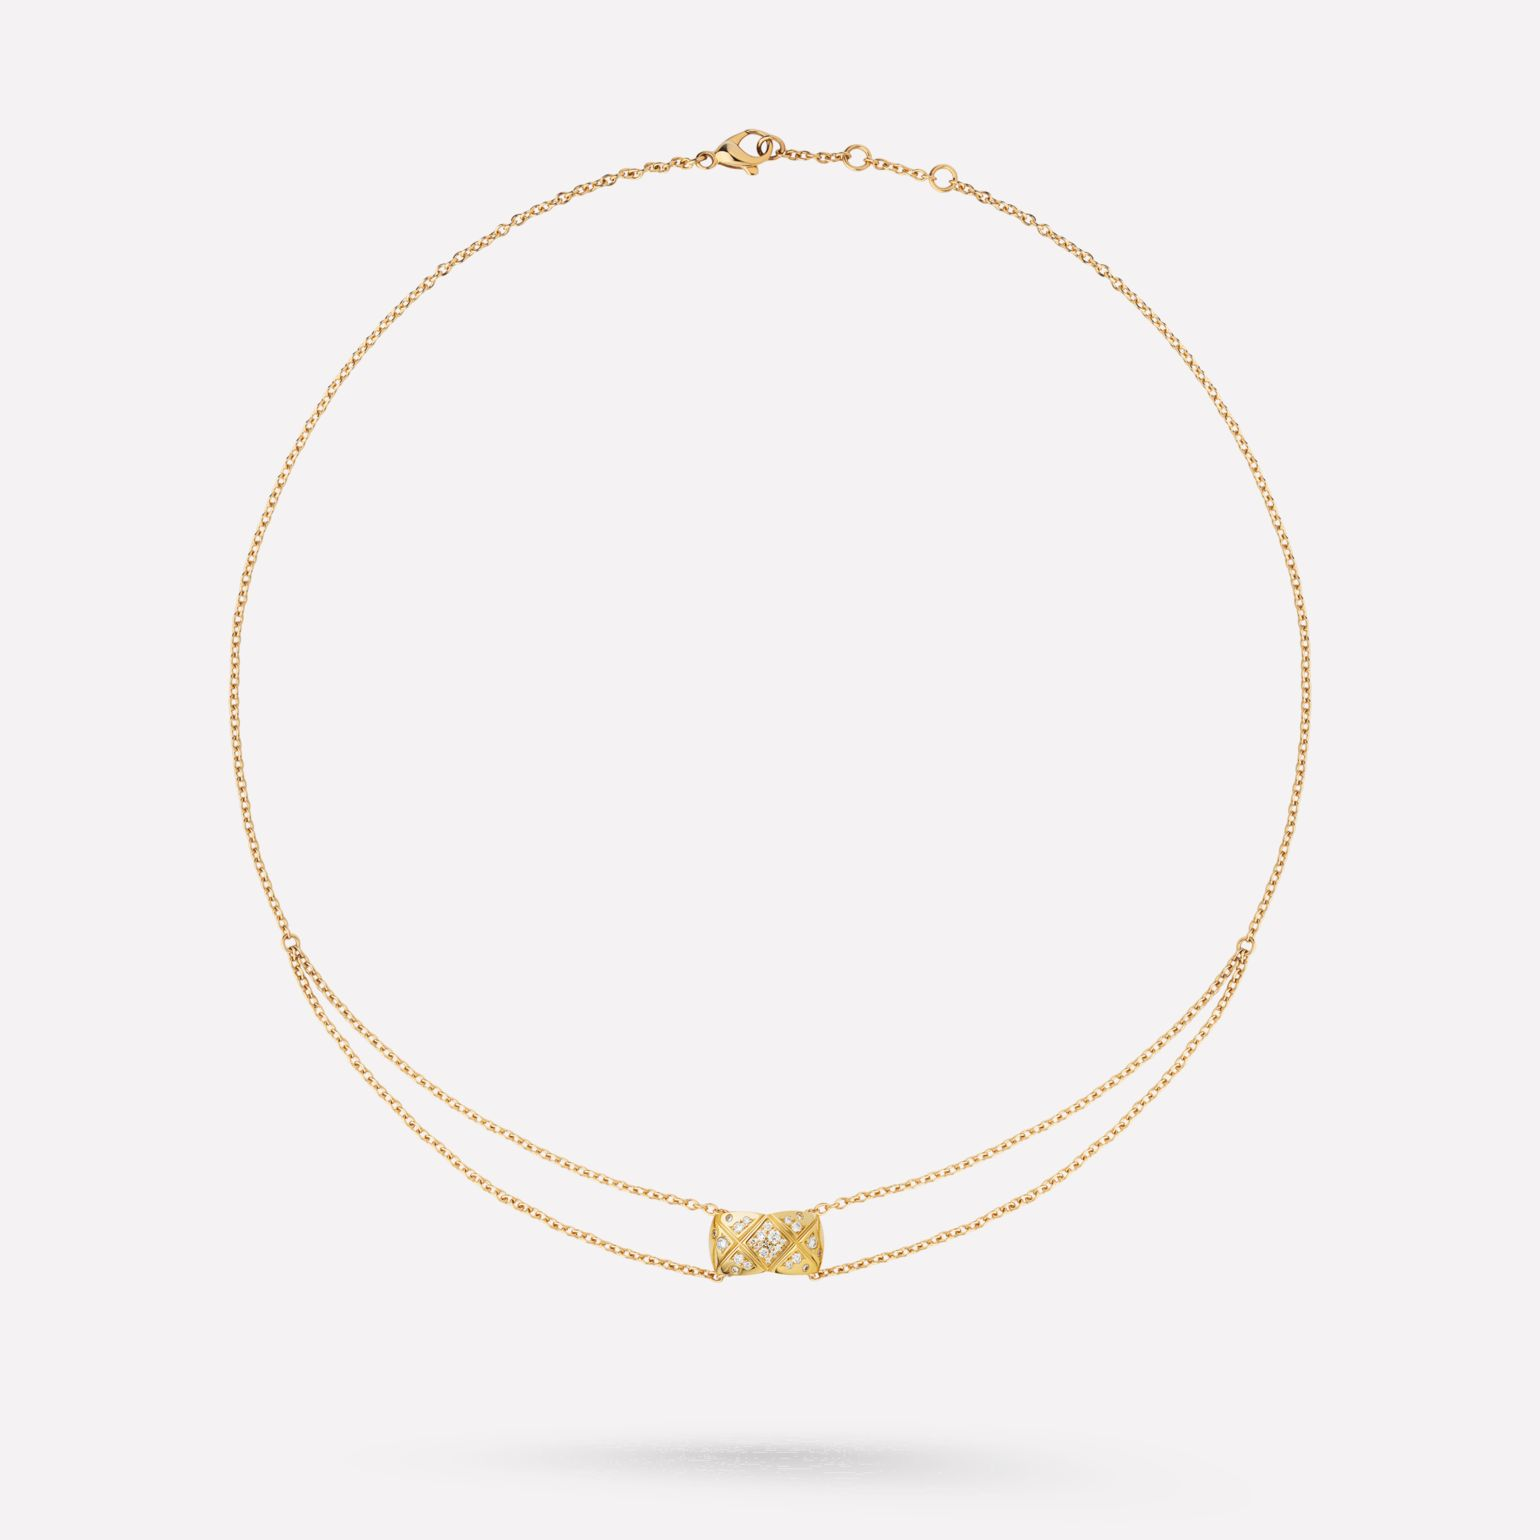 Coco Crush necklace Quilted motif necklace in 18K yellow gold and diamonds